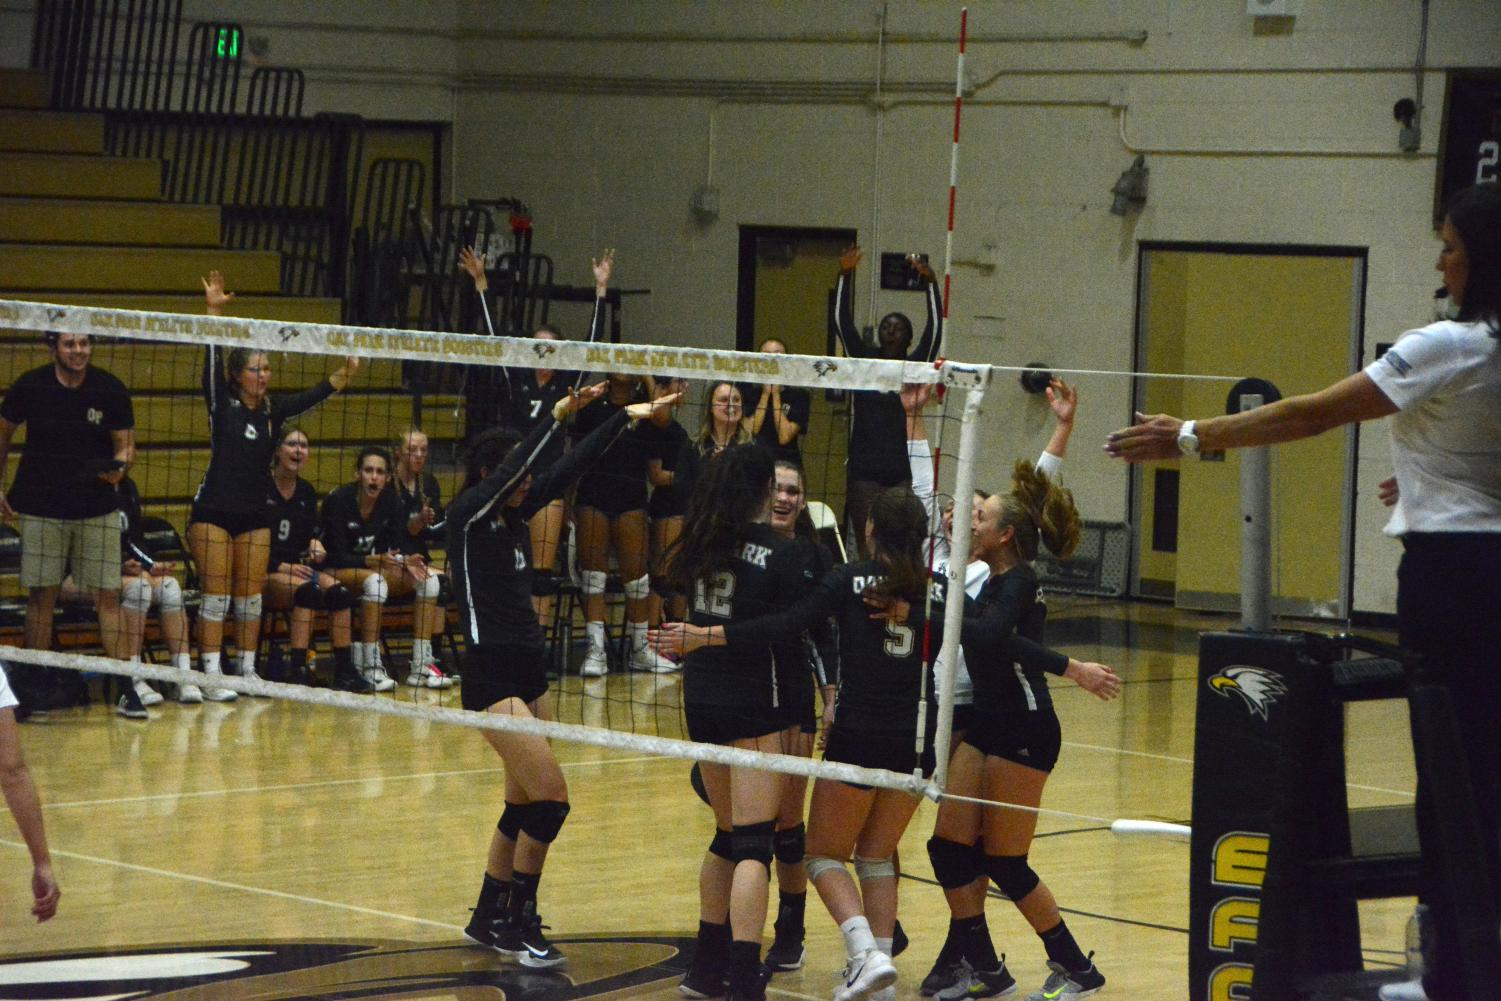 Girls' varsity volleyball team spikes the ball over the net in order to get ahead in the game